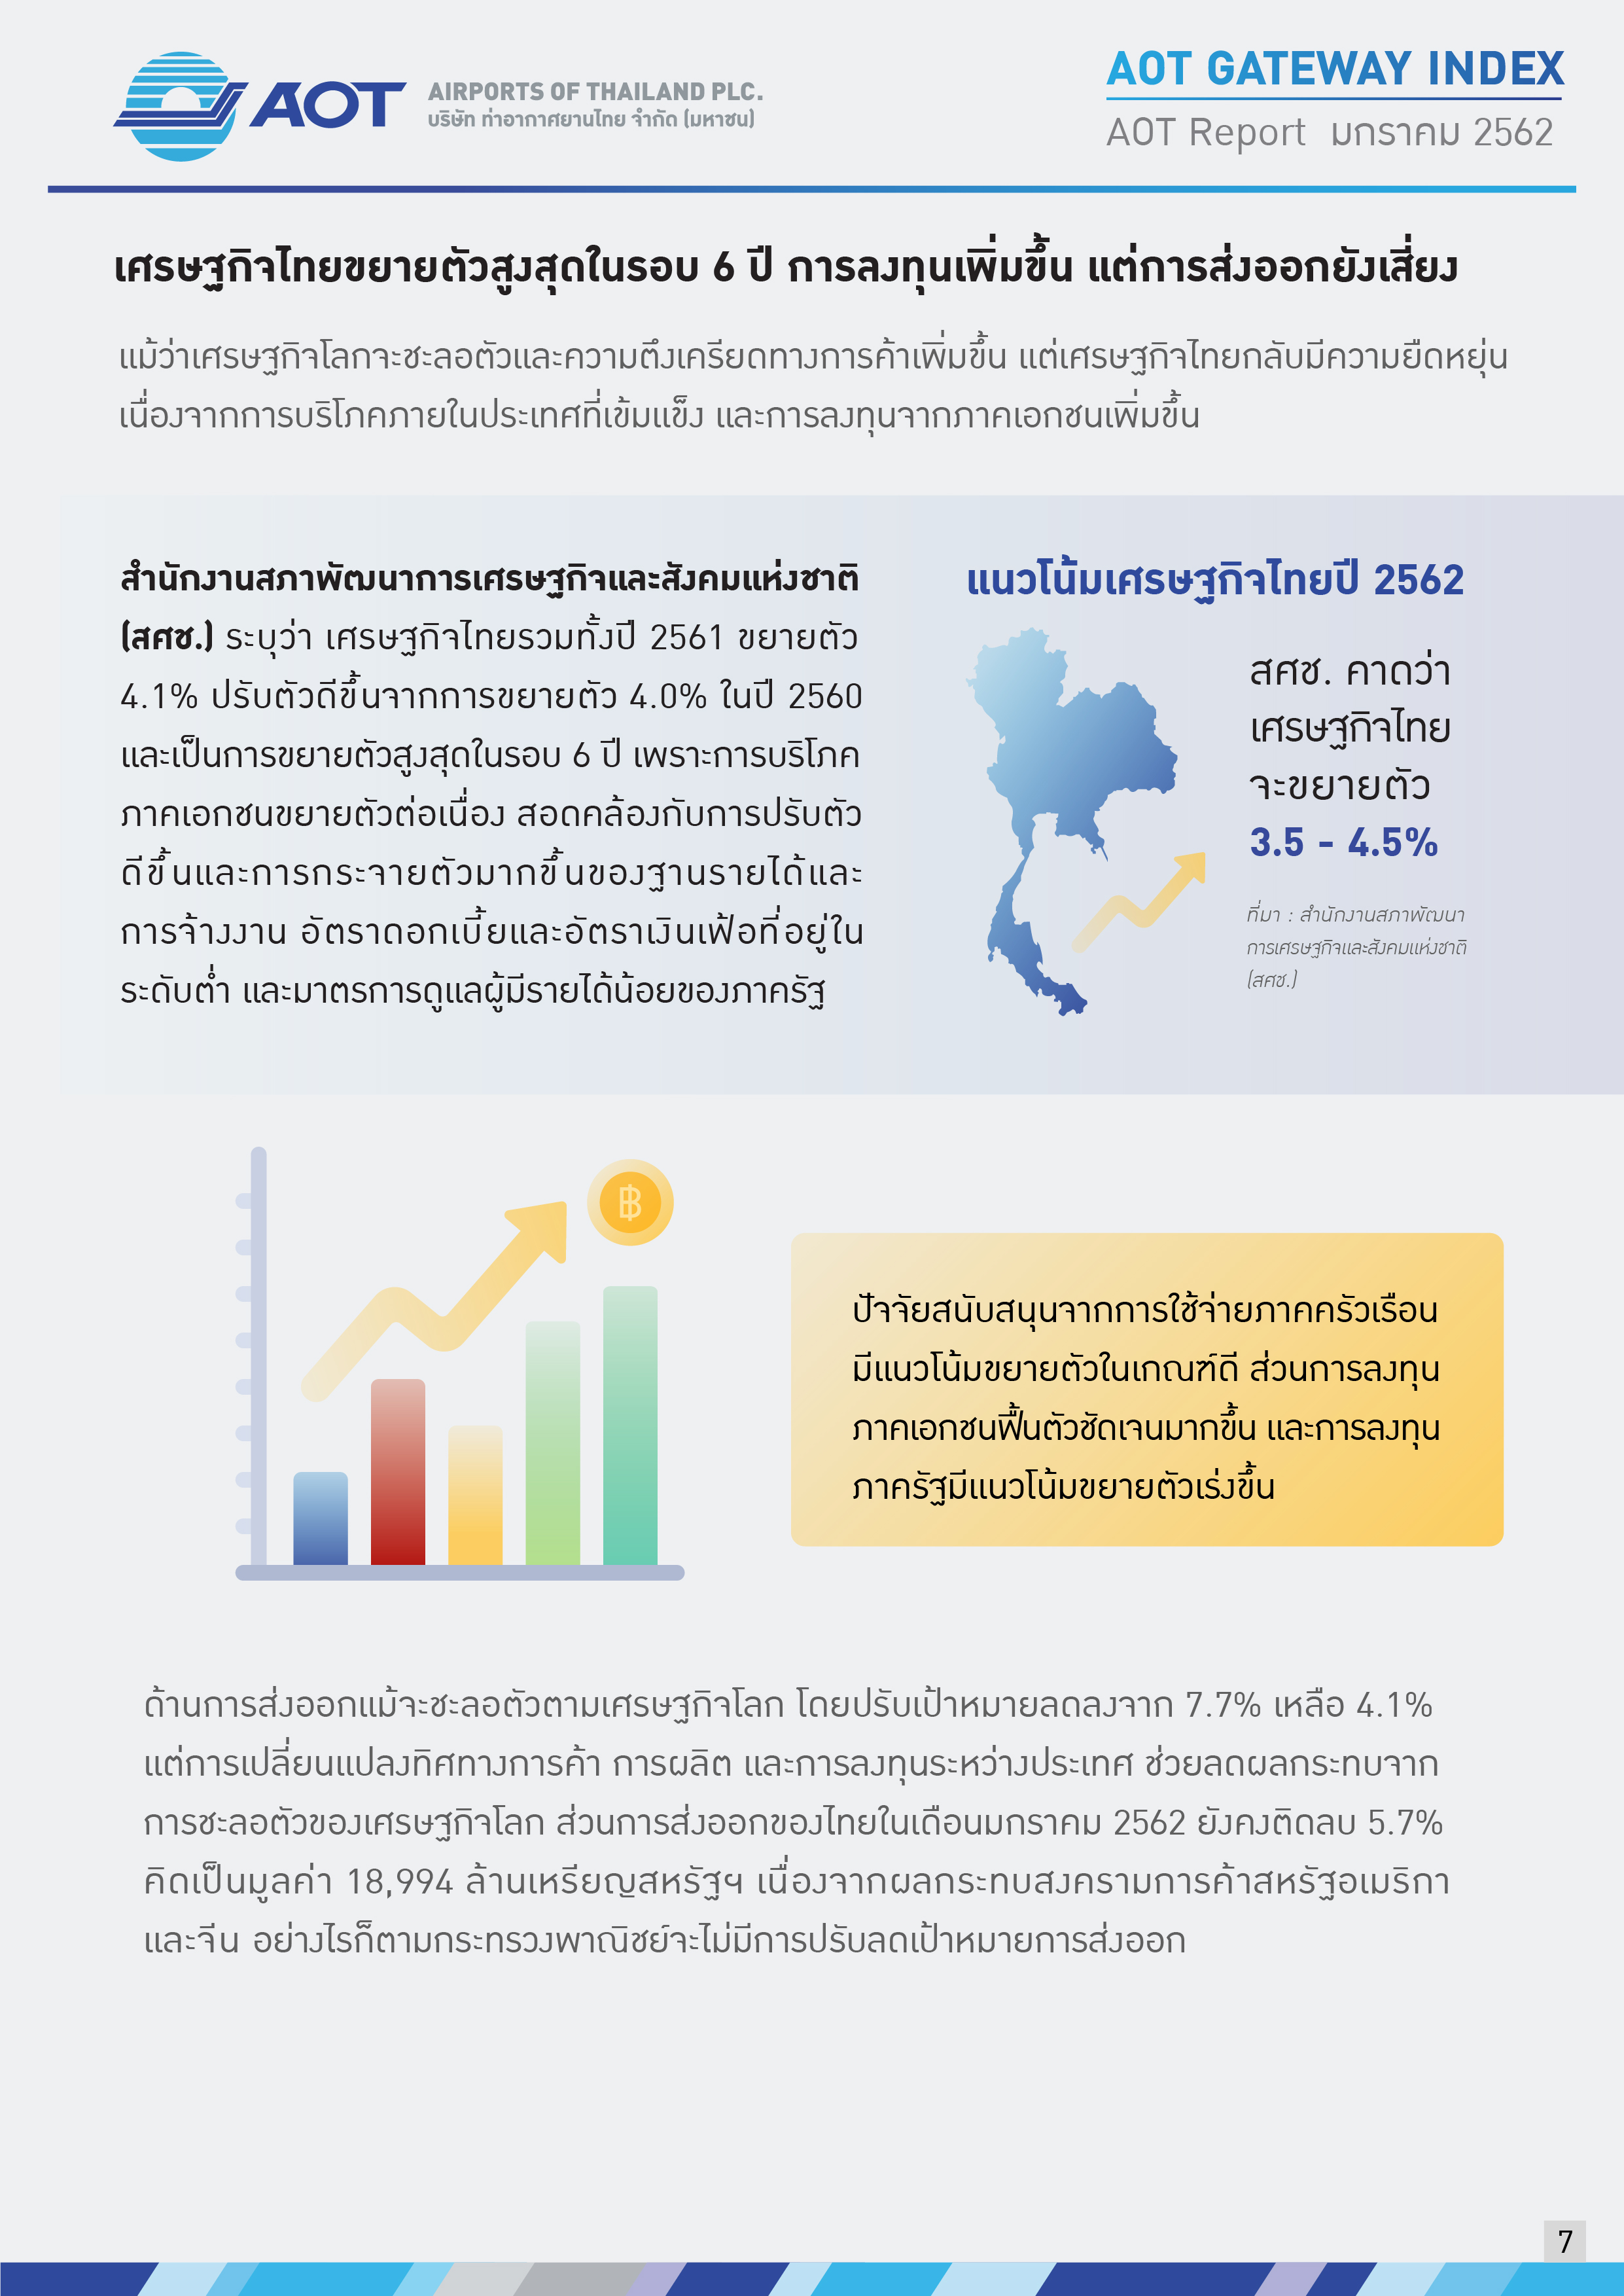 AOTcontent2019_Index_02_เศรษฐกิจโลก_V5_20190401_Page07